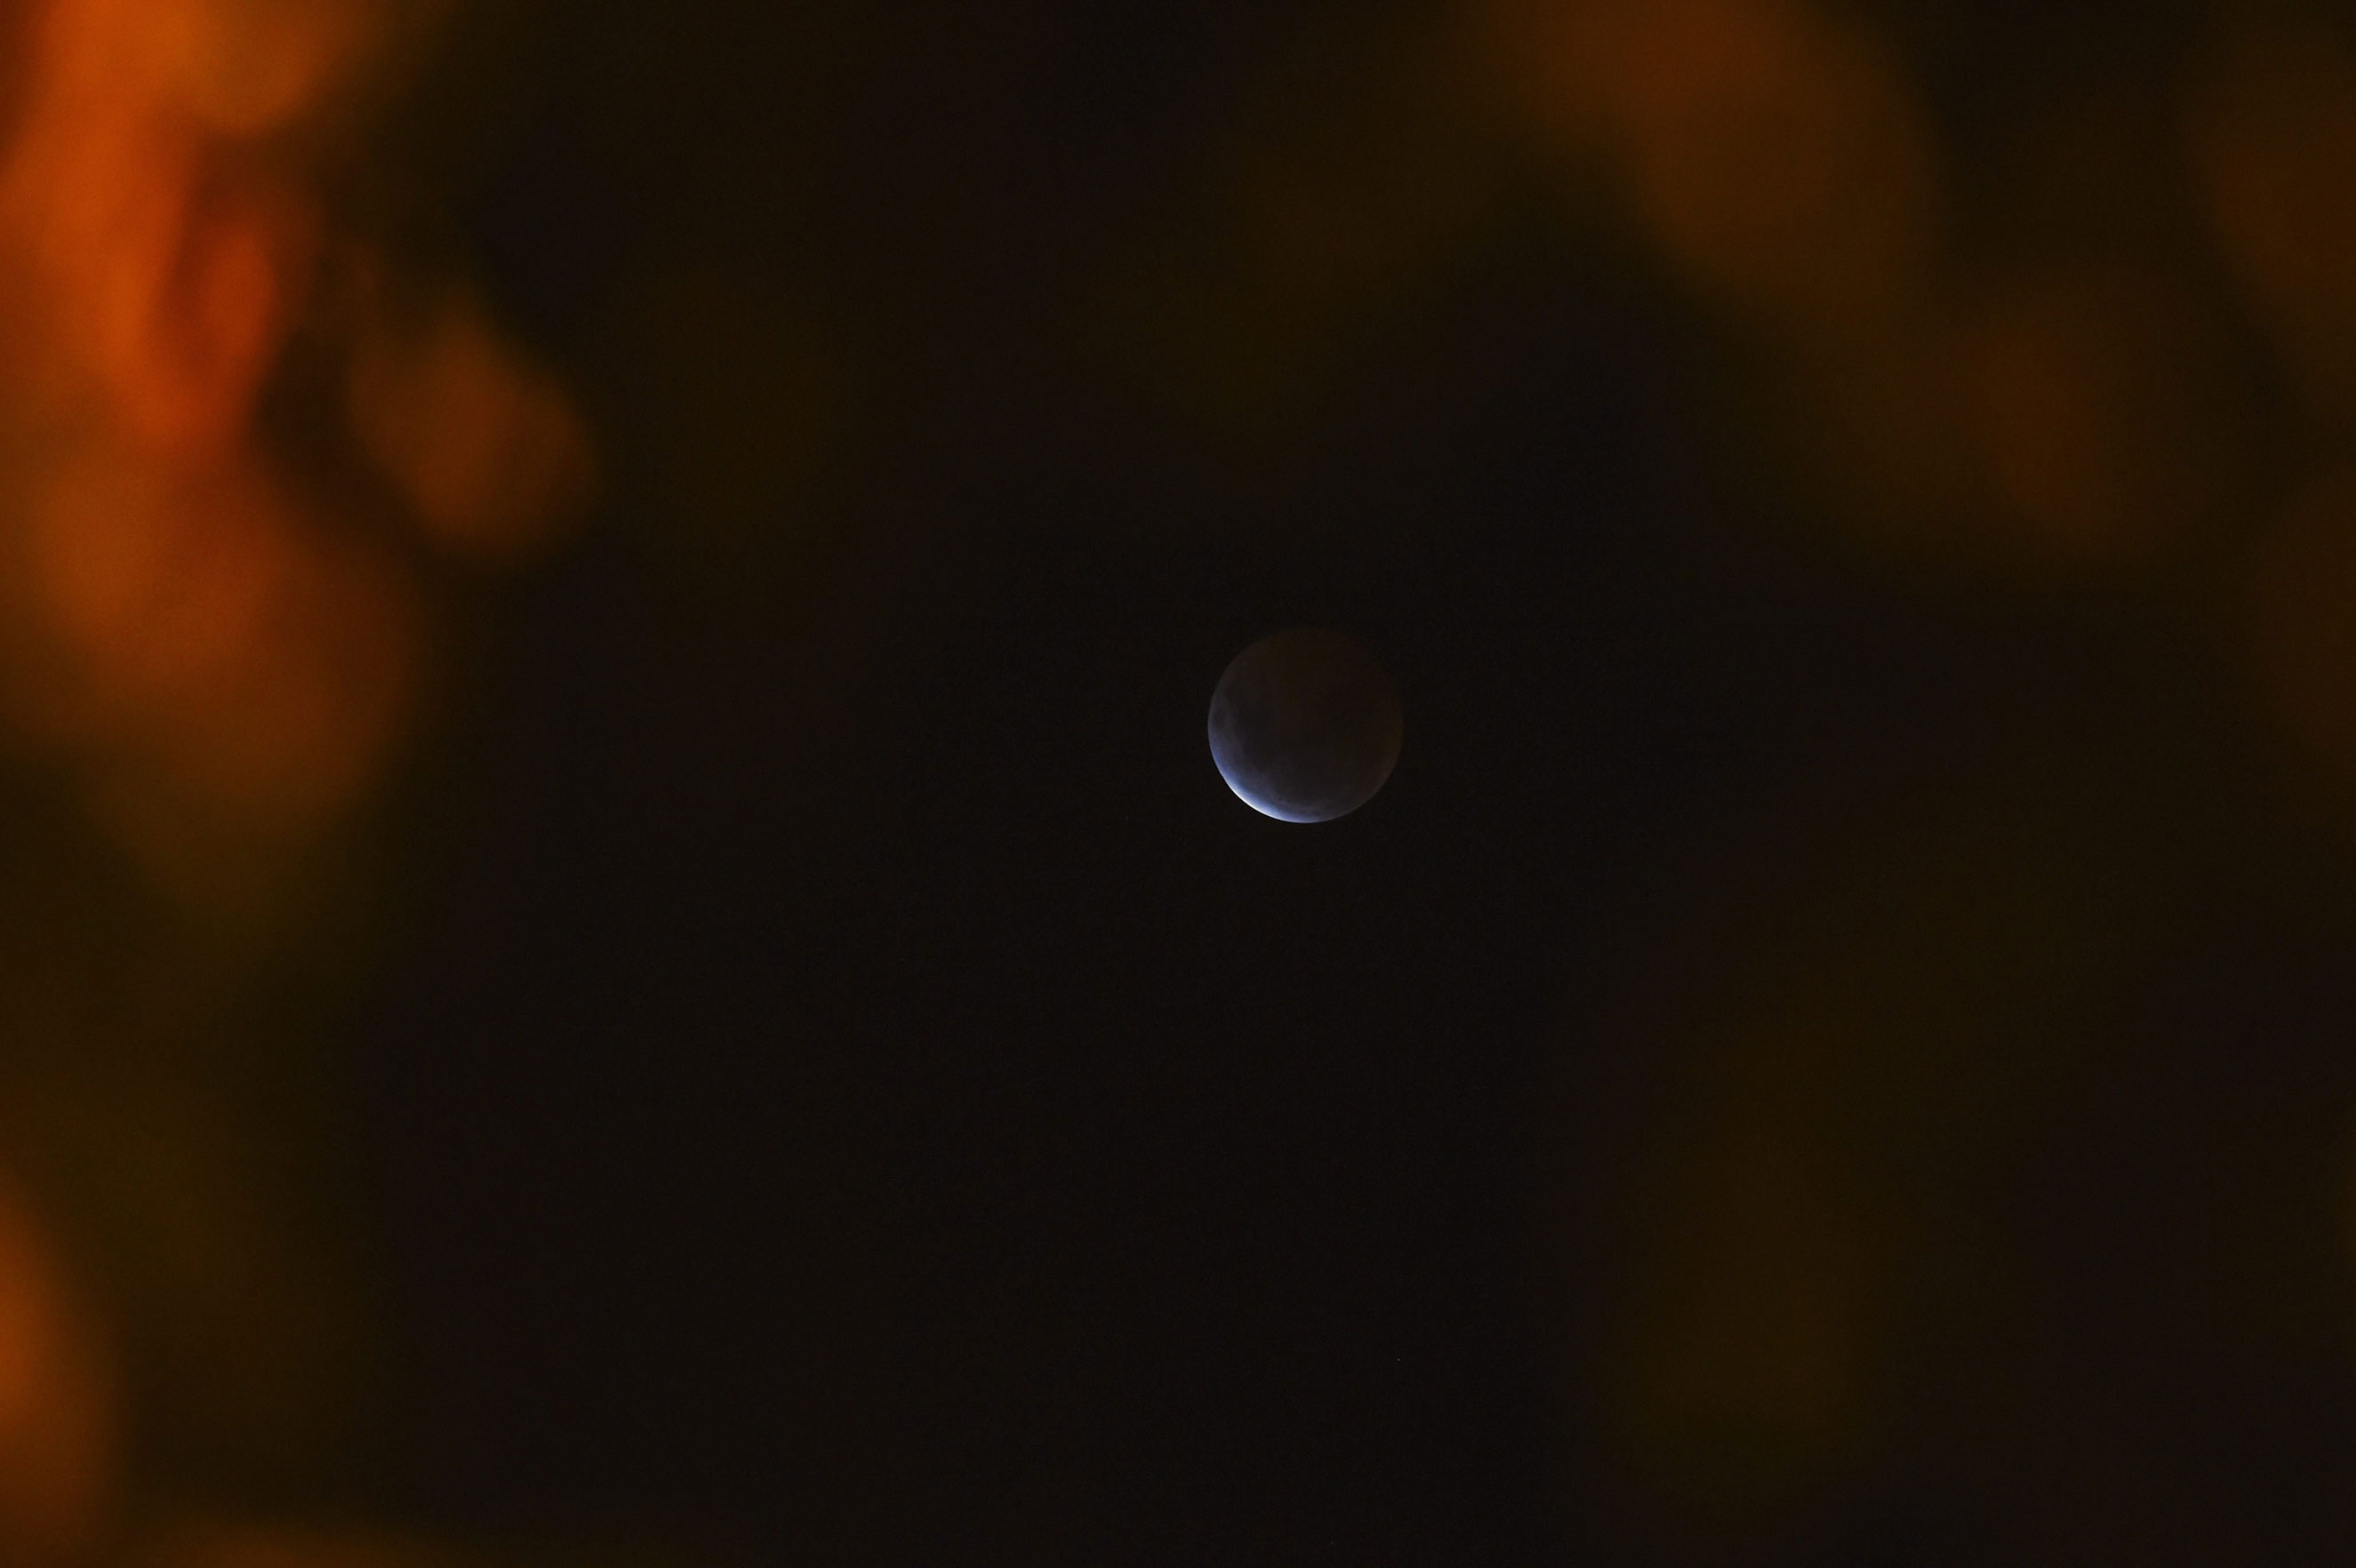 The beginning of the total lunar eclipse seen from Canberra, Australia, on April 4,  2015.